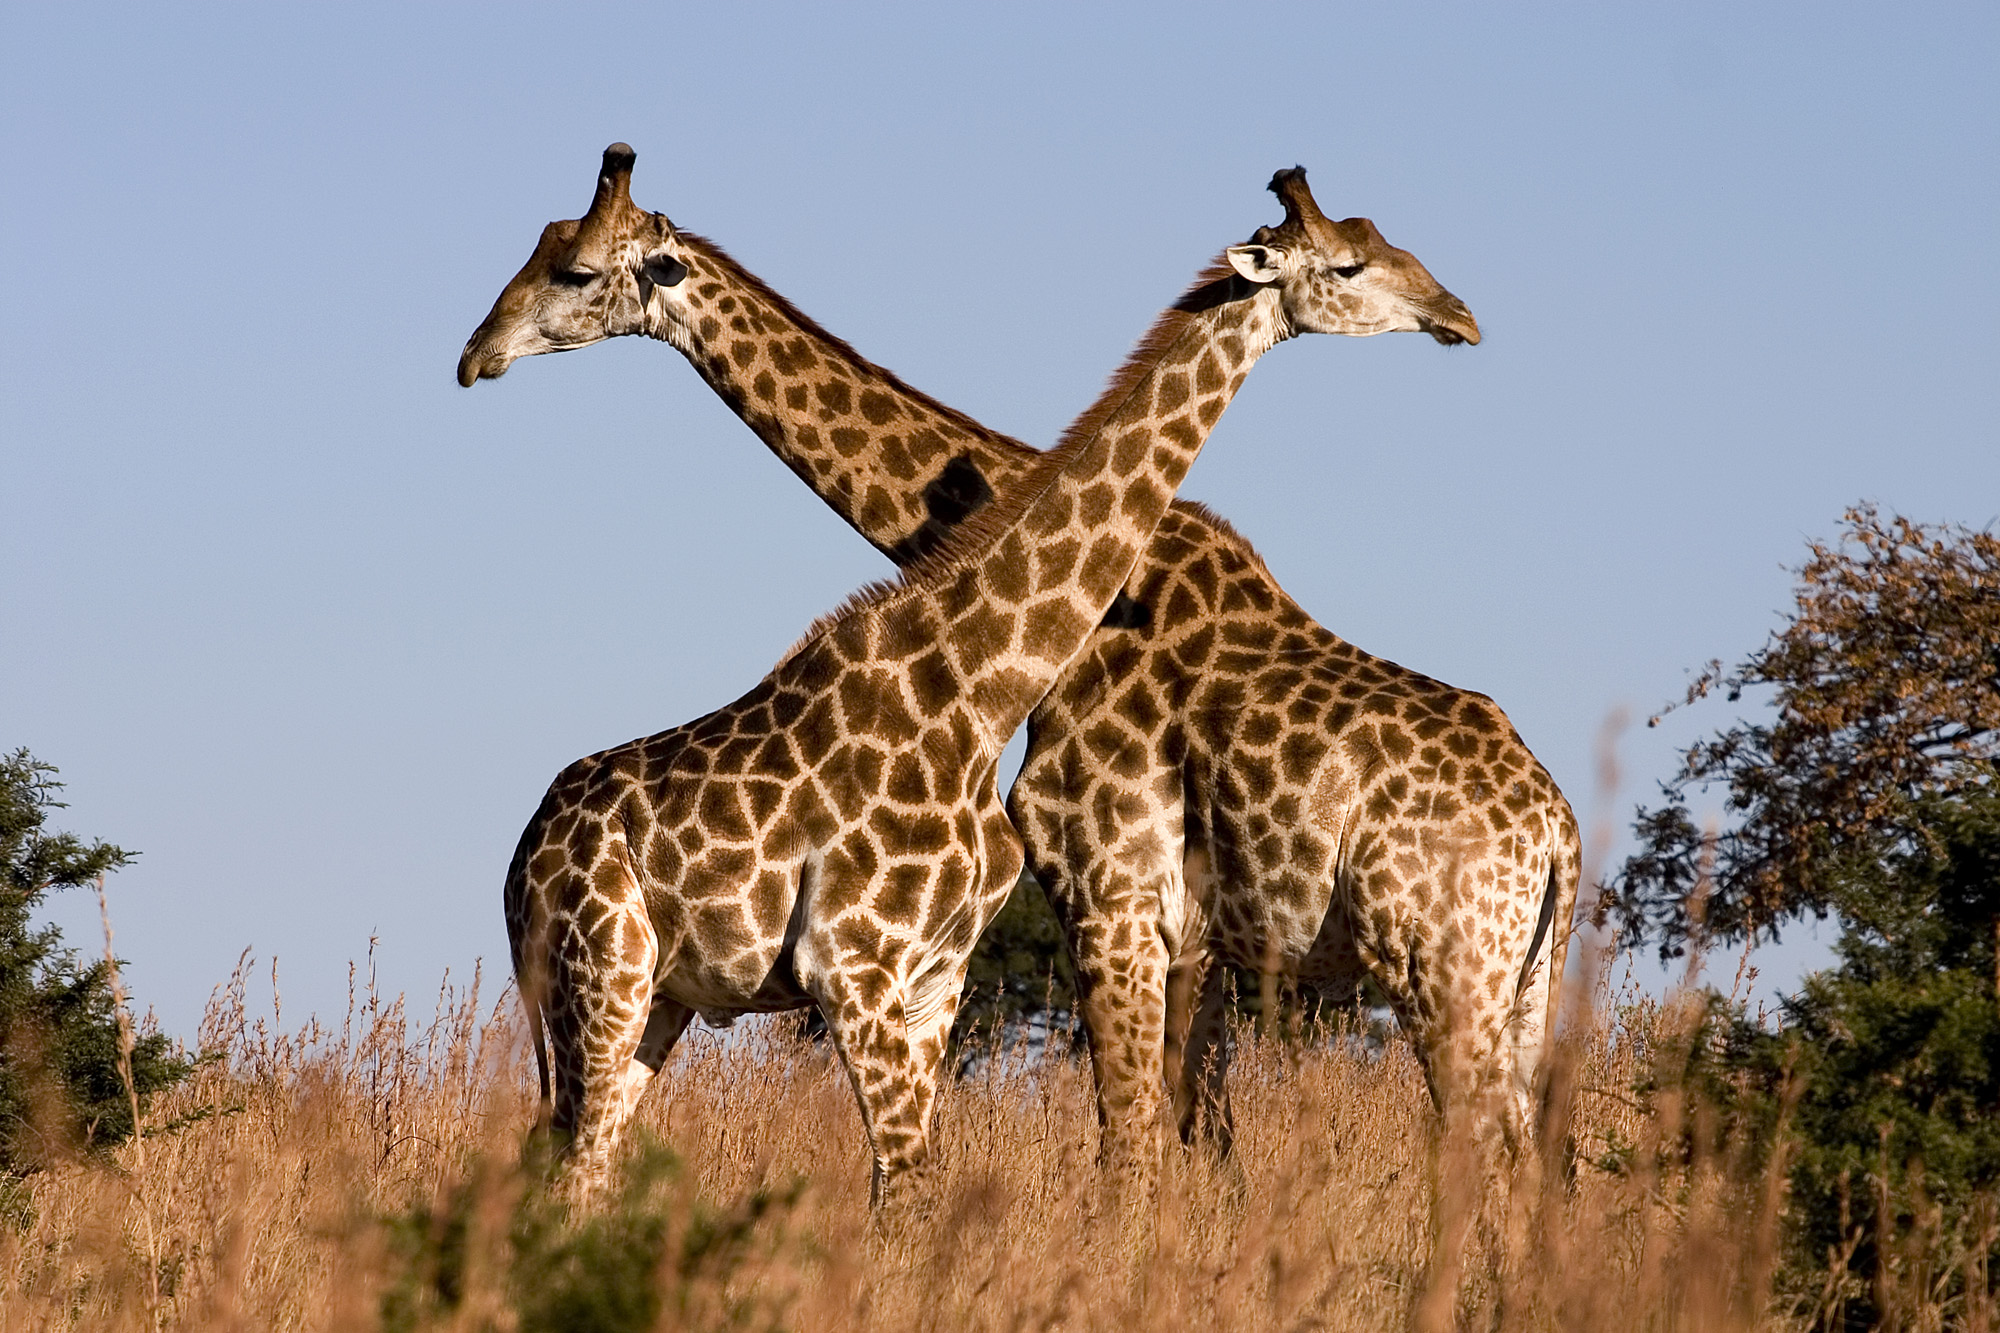 Giraffe Male giraffes will engage in